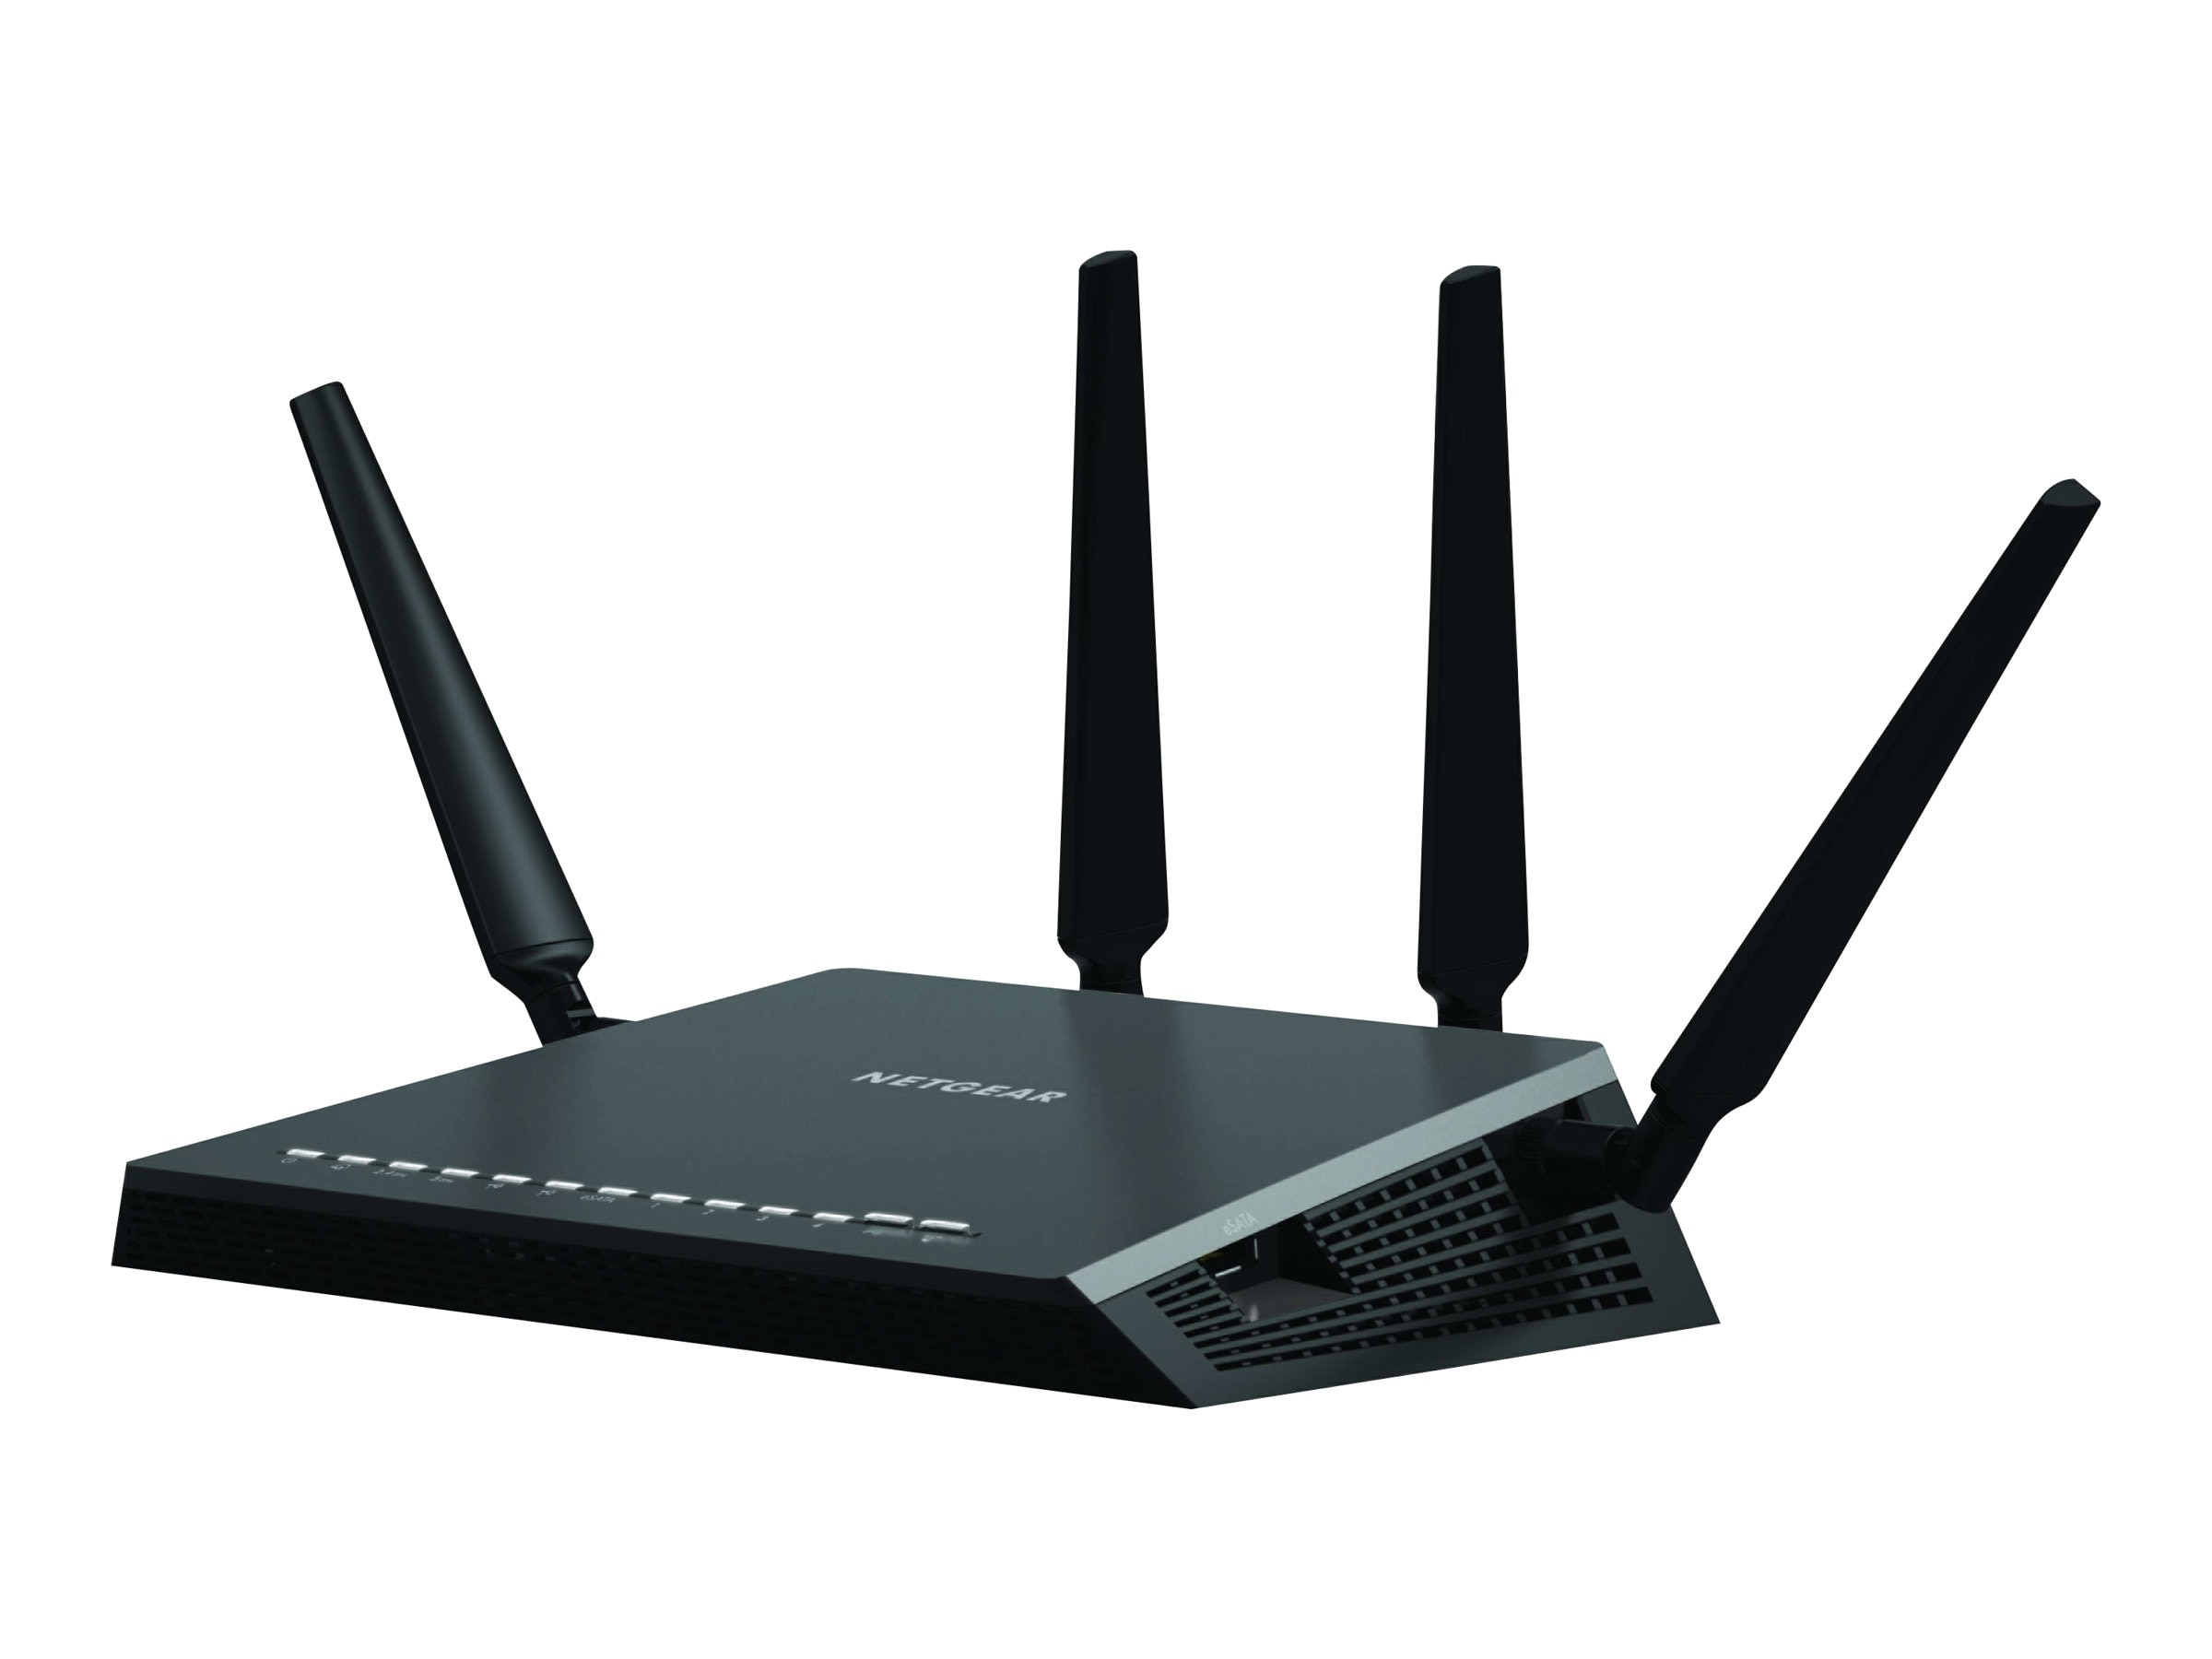 Netgear Nighthawk X4 AC2350 Smart Wi-Fi Router, R7500-100NAS, 17679873, Network Routers